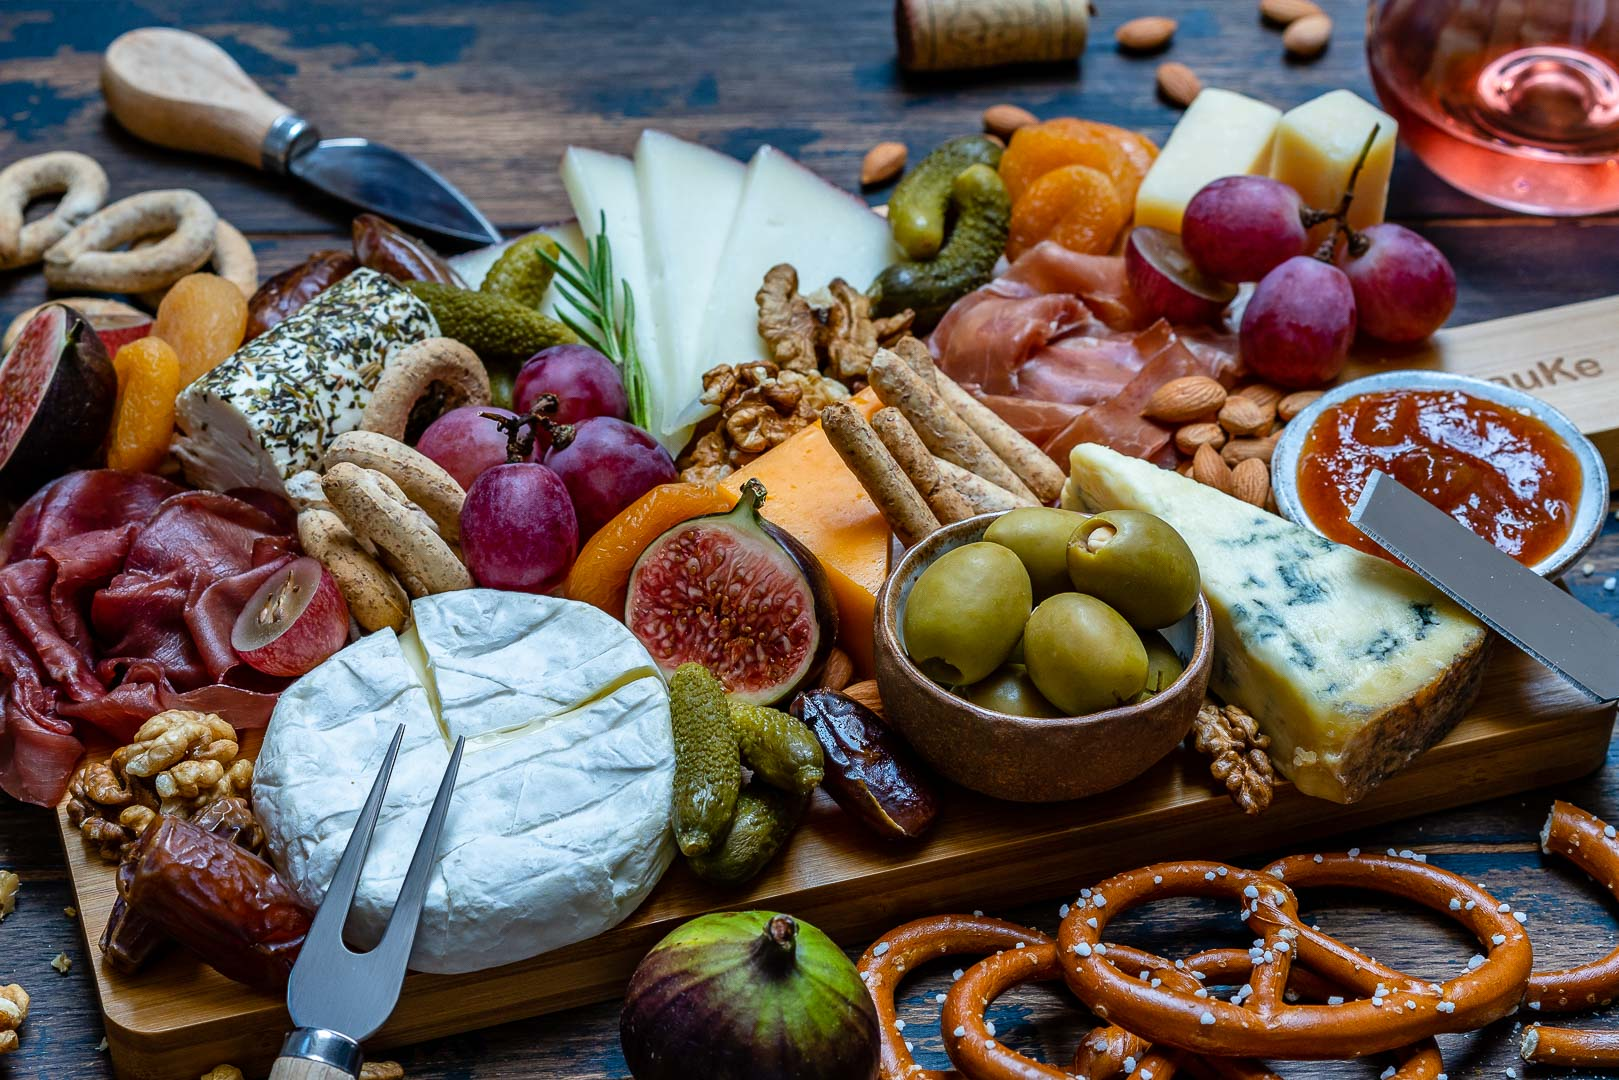 How to Make The Best Charcuterie And Cheese Platter For The Holidays-11